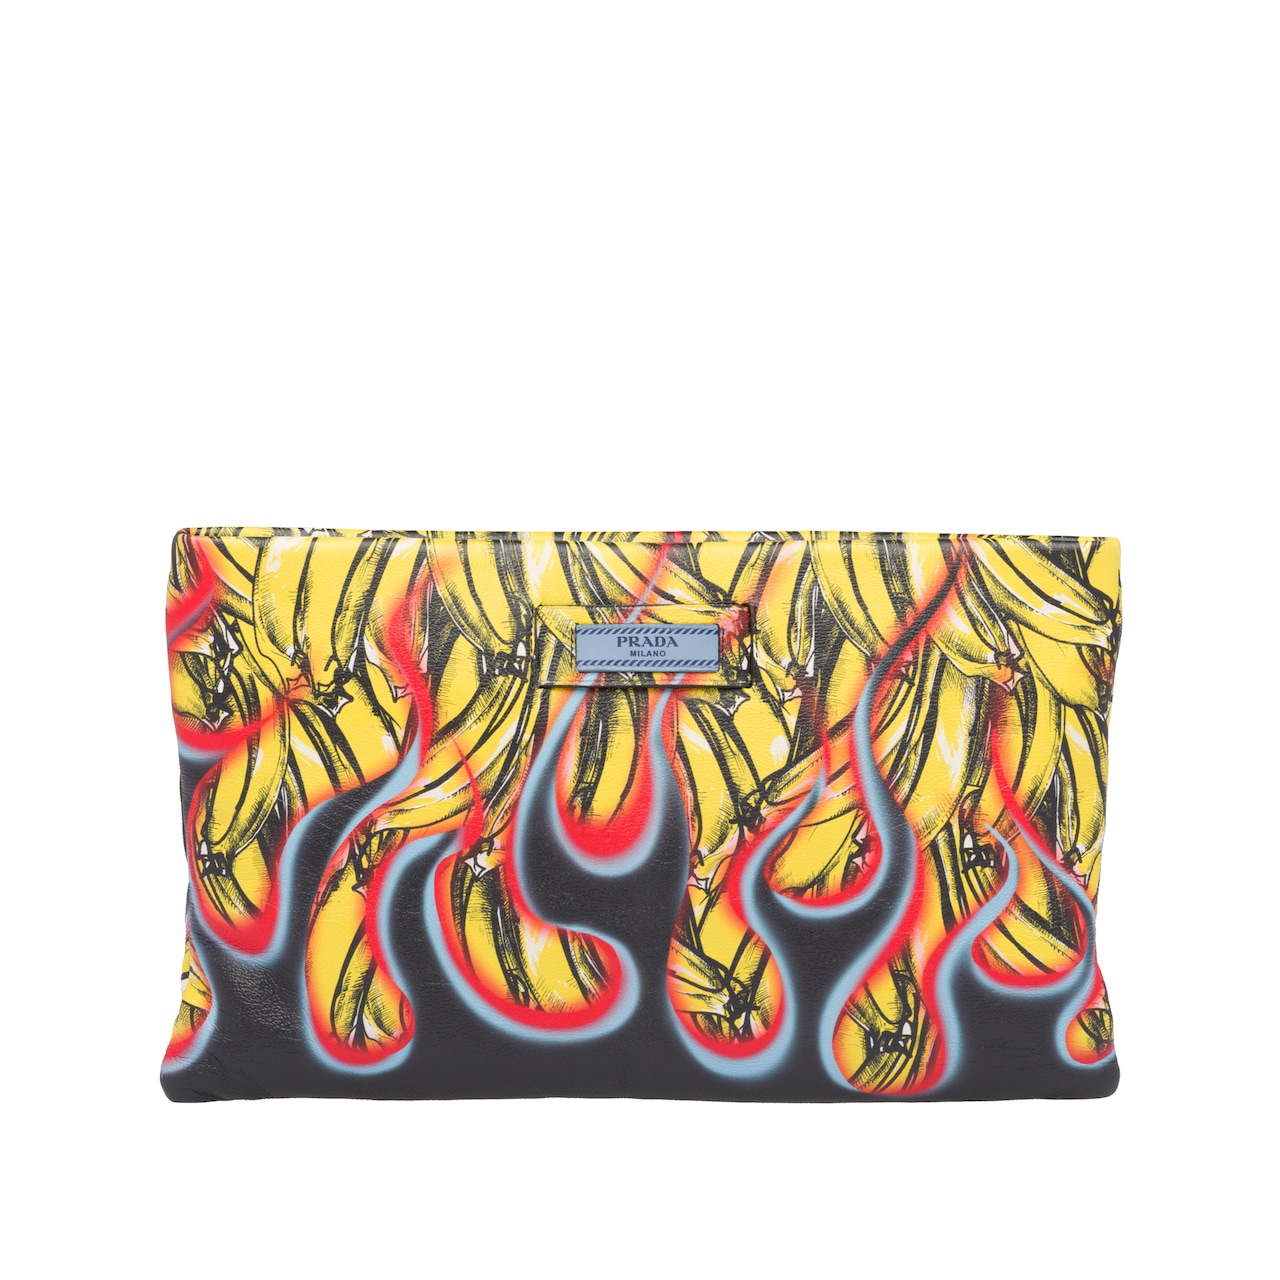 Printed leather clutch